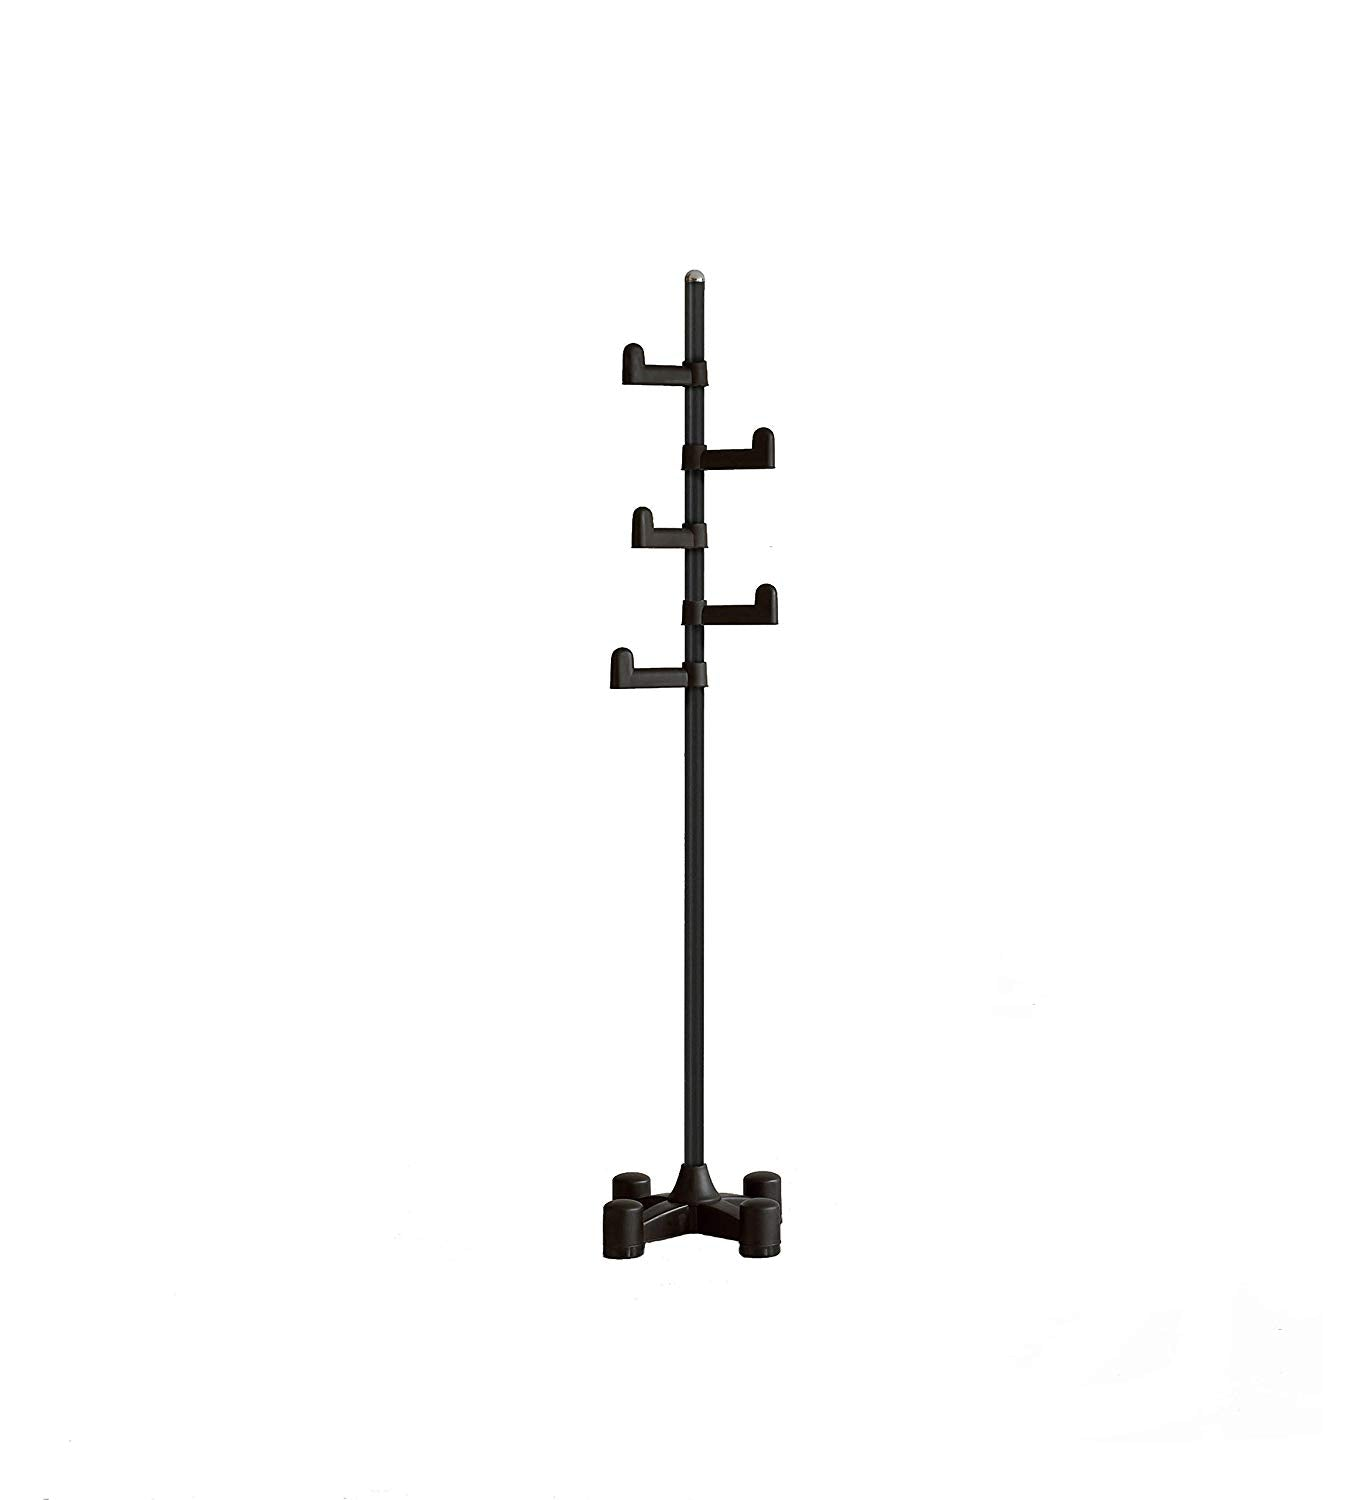 LivingStar Premium Coat Rack & Stand Hanger: modern design, easy to assemble, vertically adjustable hooks, durable body and base. Ample rooms to put heavy coats & clothes. Easily move around. (White)